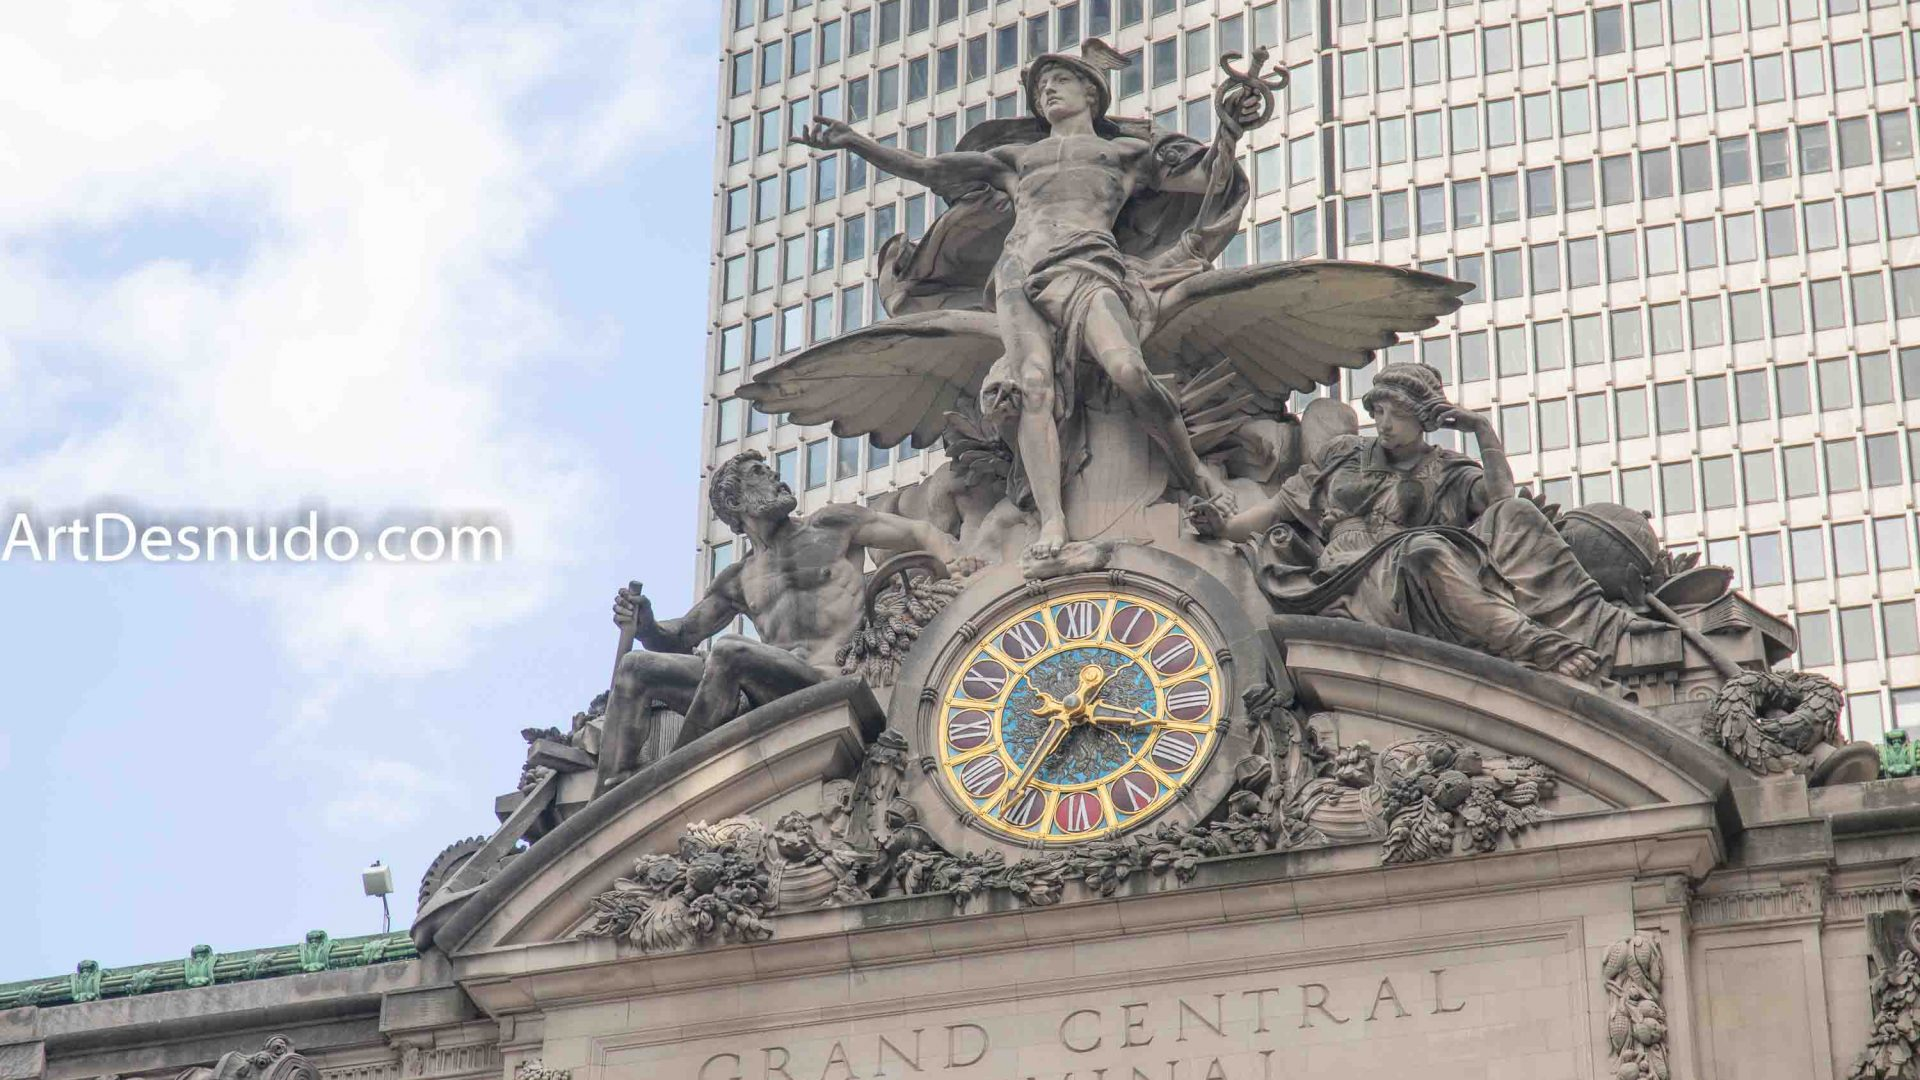 Saturday, September 7, 2019 - The Glory of Commerce sculpture. The work includes representations of Hercules, Mercury and Minerva. Mercury is nude and he is standing at the top center of the work. Grand Central Terminal. New York City.